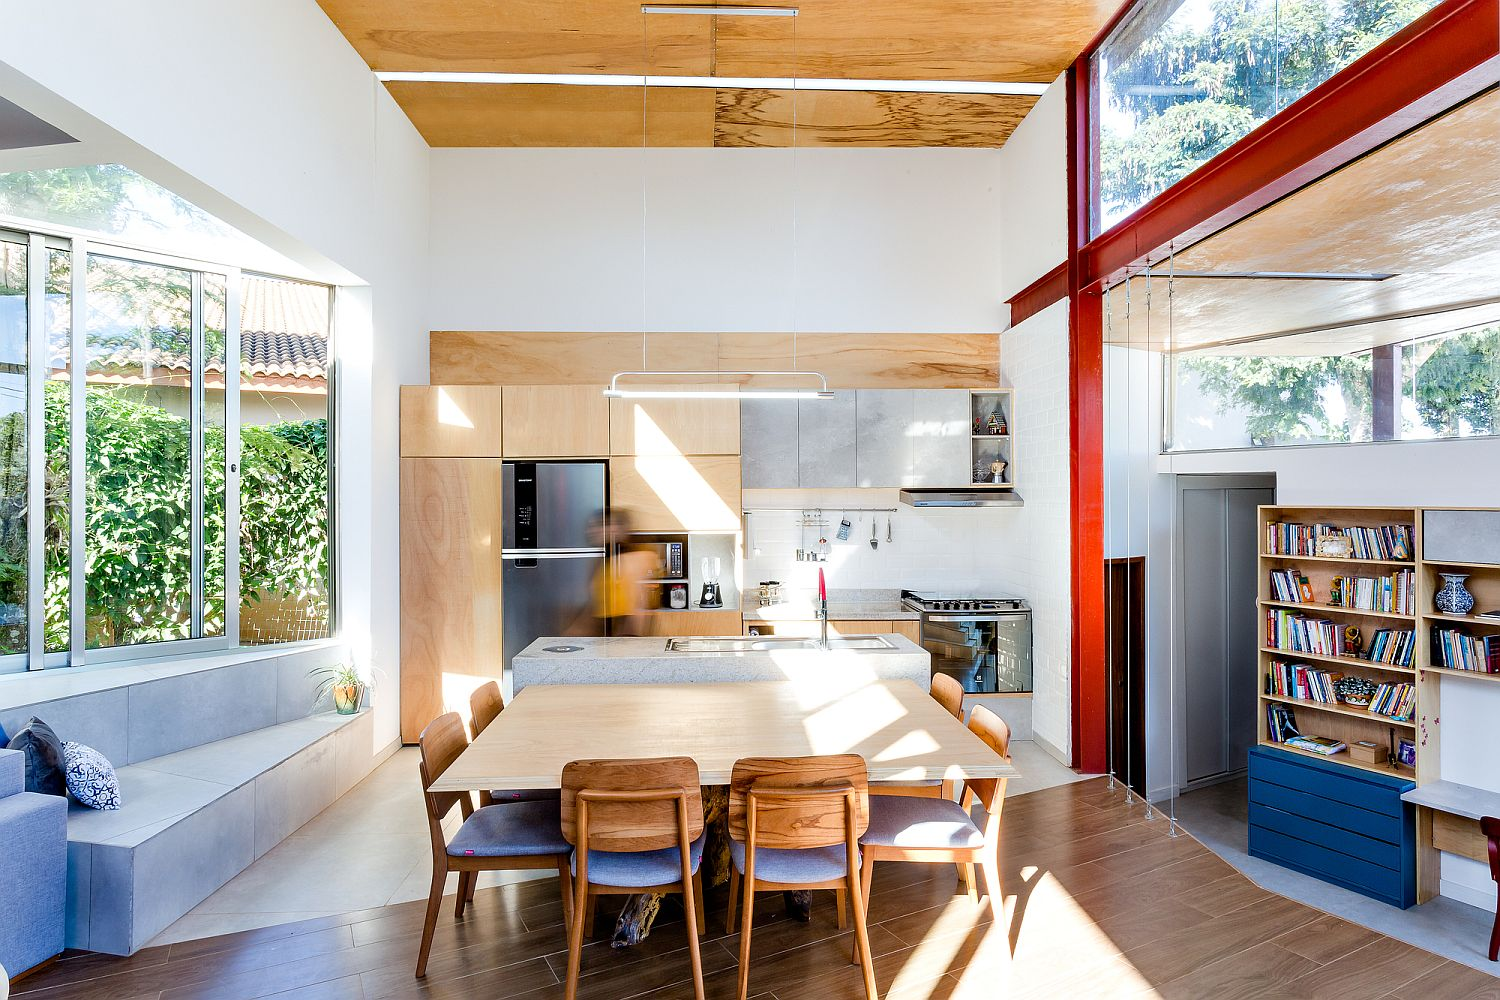 Red and blue accents add color to the neutral interior